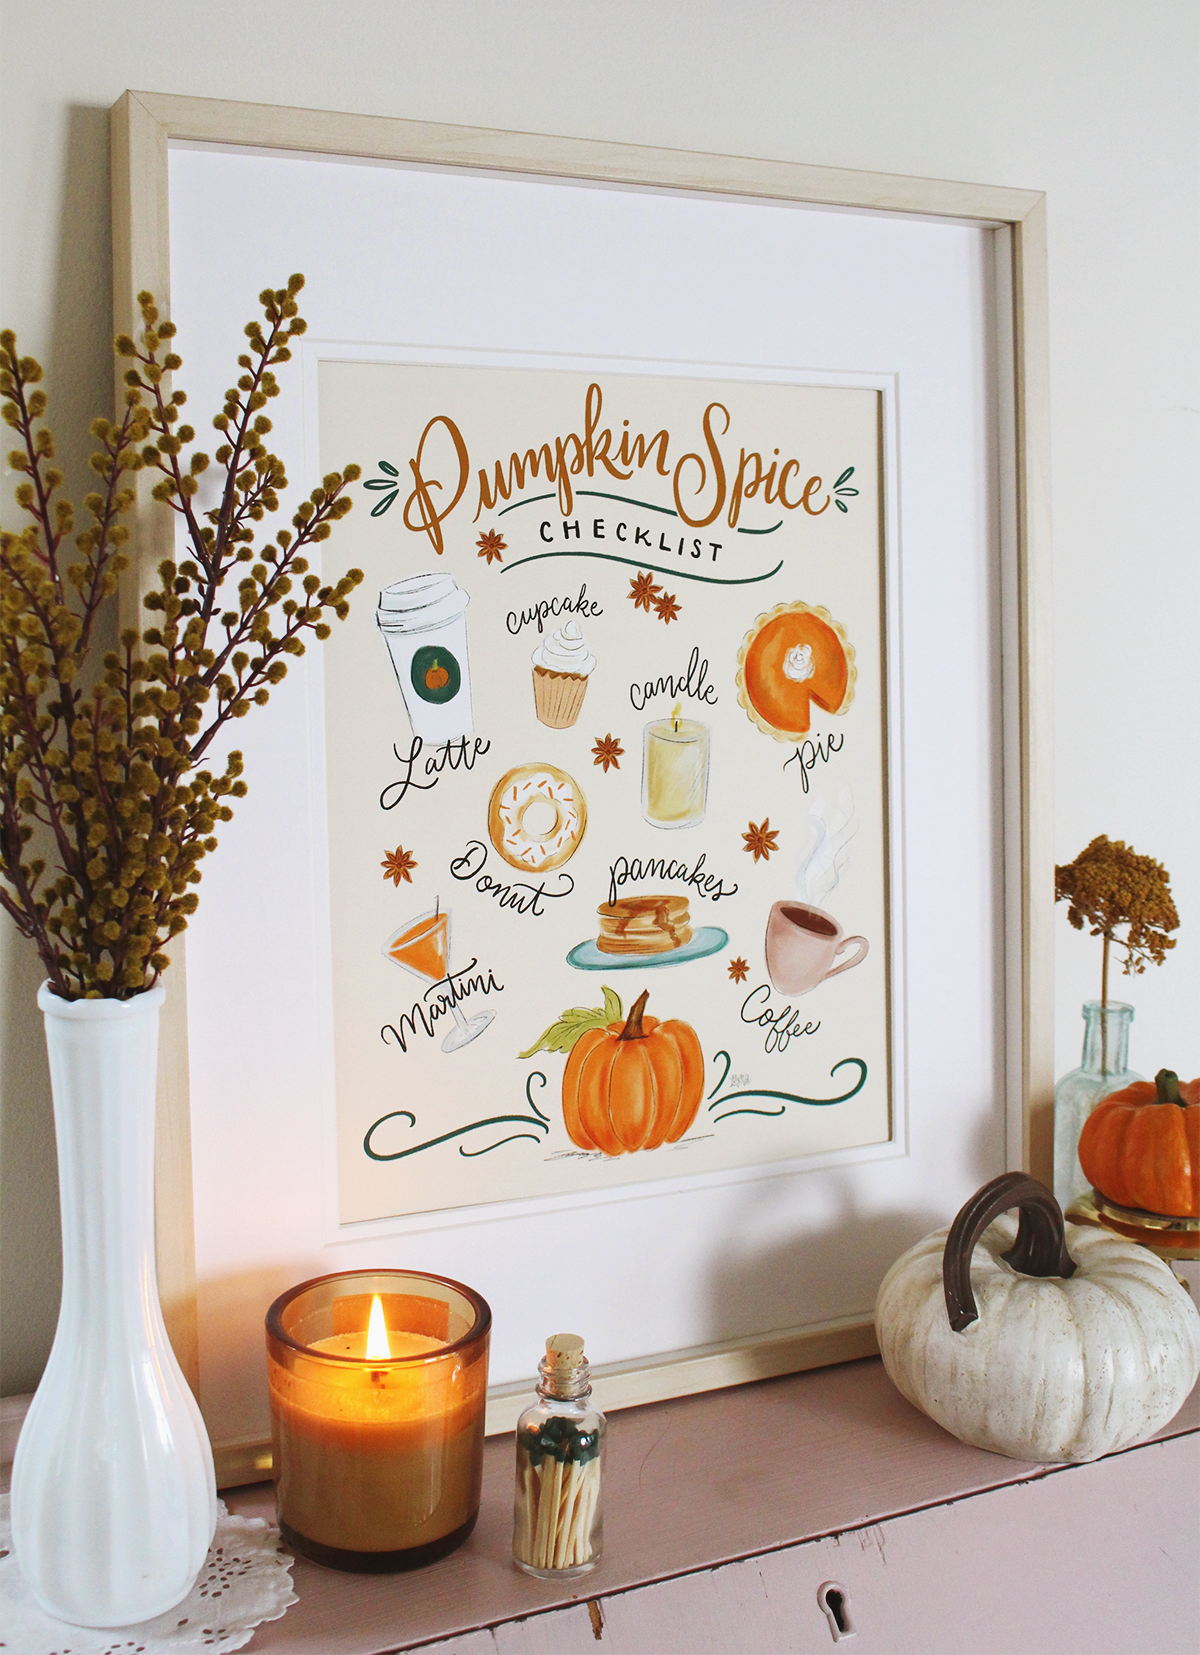 Pumpkin Spice Checklist Art Print to Decorate Your Home for Fall